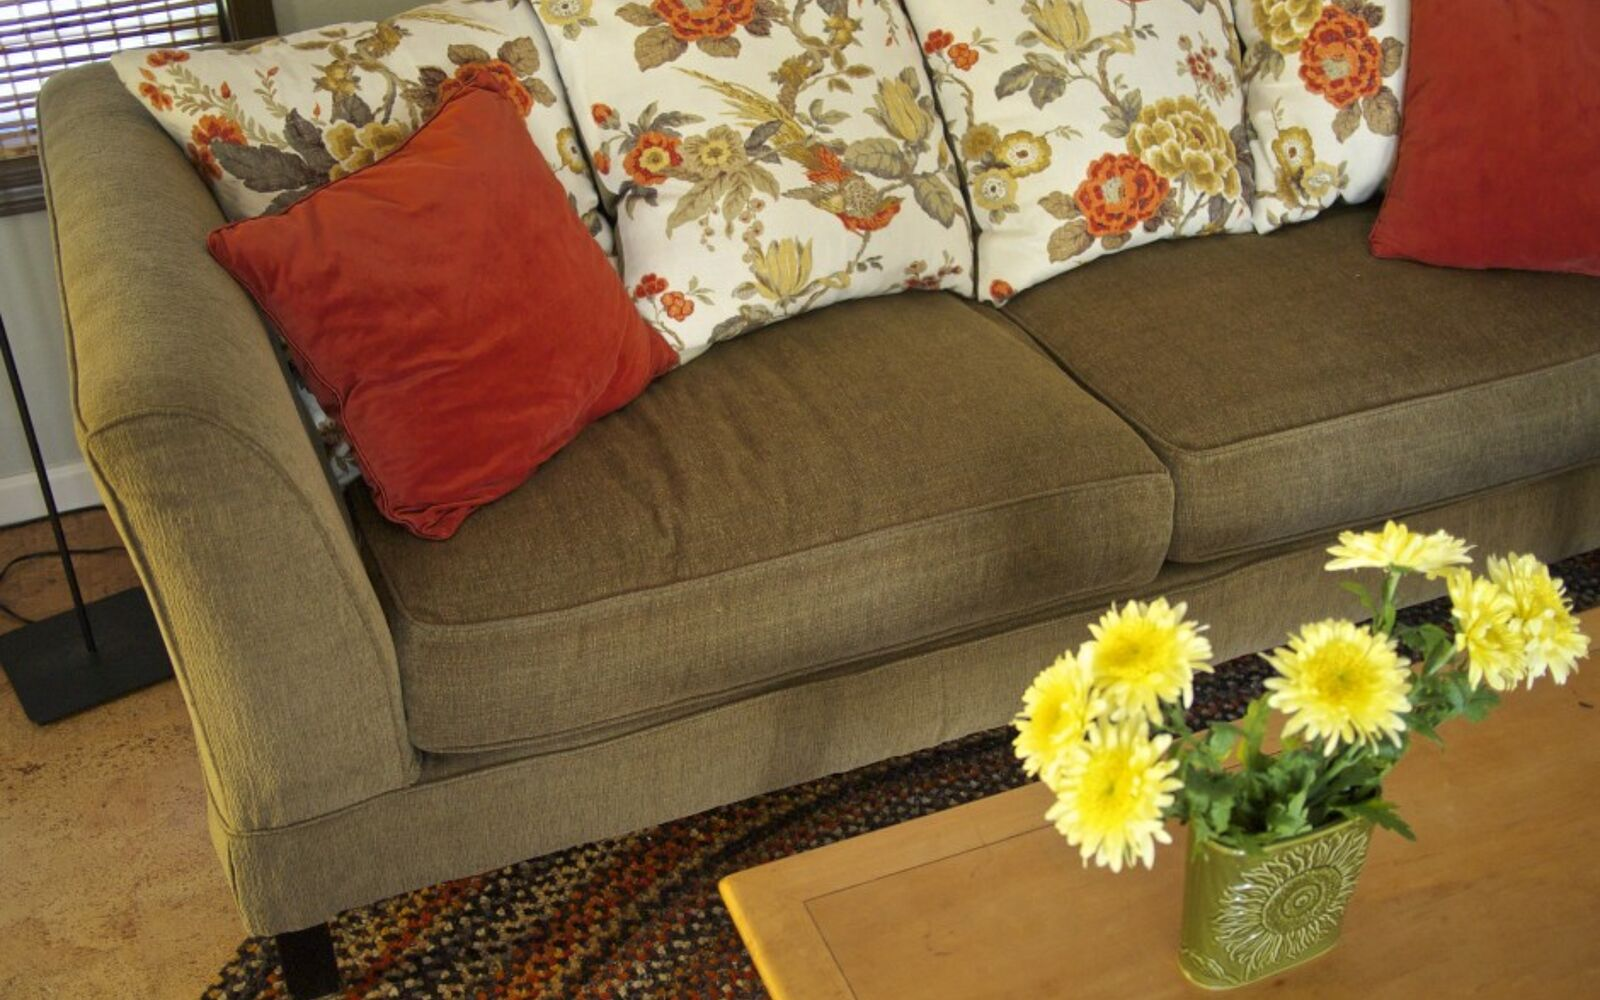 s hide your couch s wear and tear with these great ideas, Replace trashed cushions with throw pillows